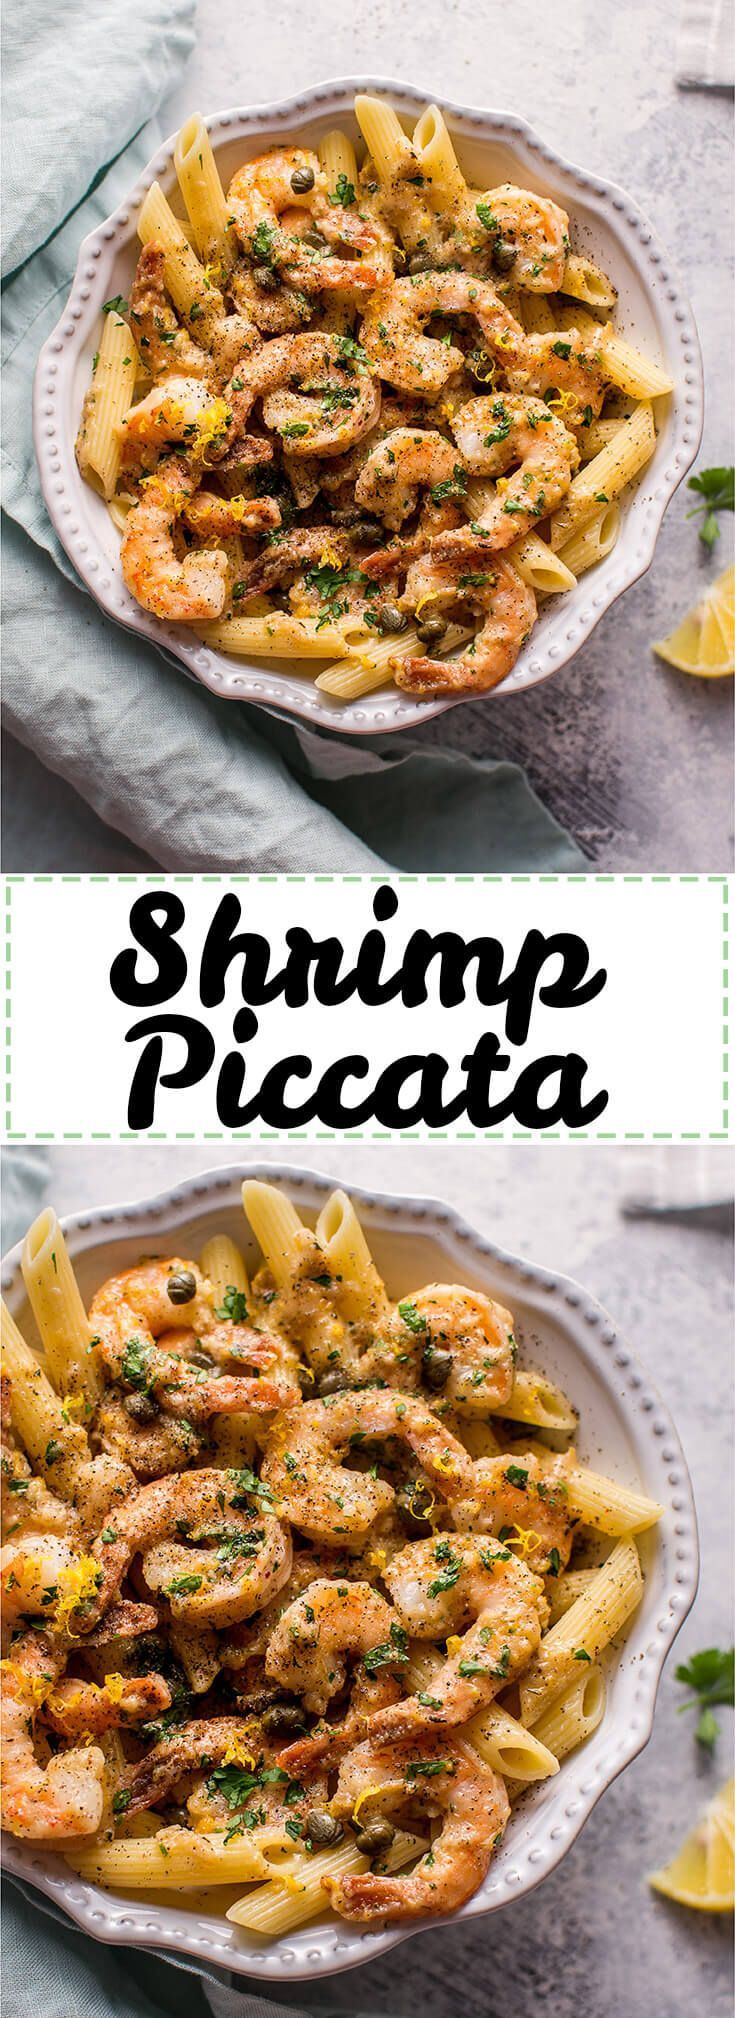 This quick and easy shrimp piccata recipe is ready in under half an hour. Succulent shrimp are cooked in a lemon-butter-caper sauce and served over penne.